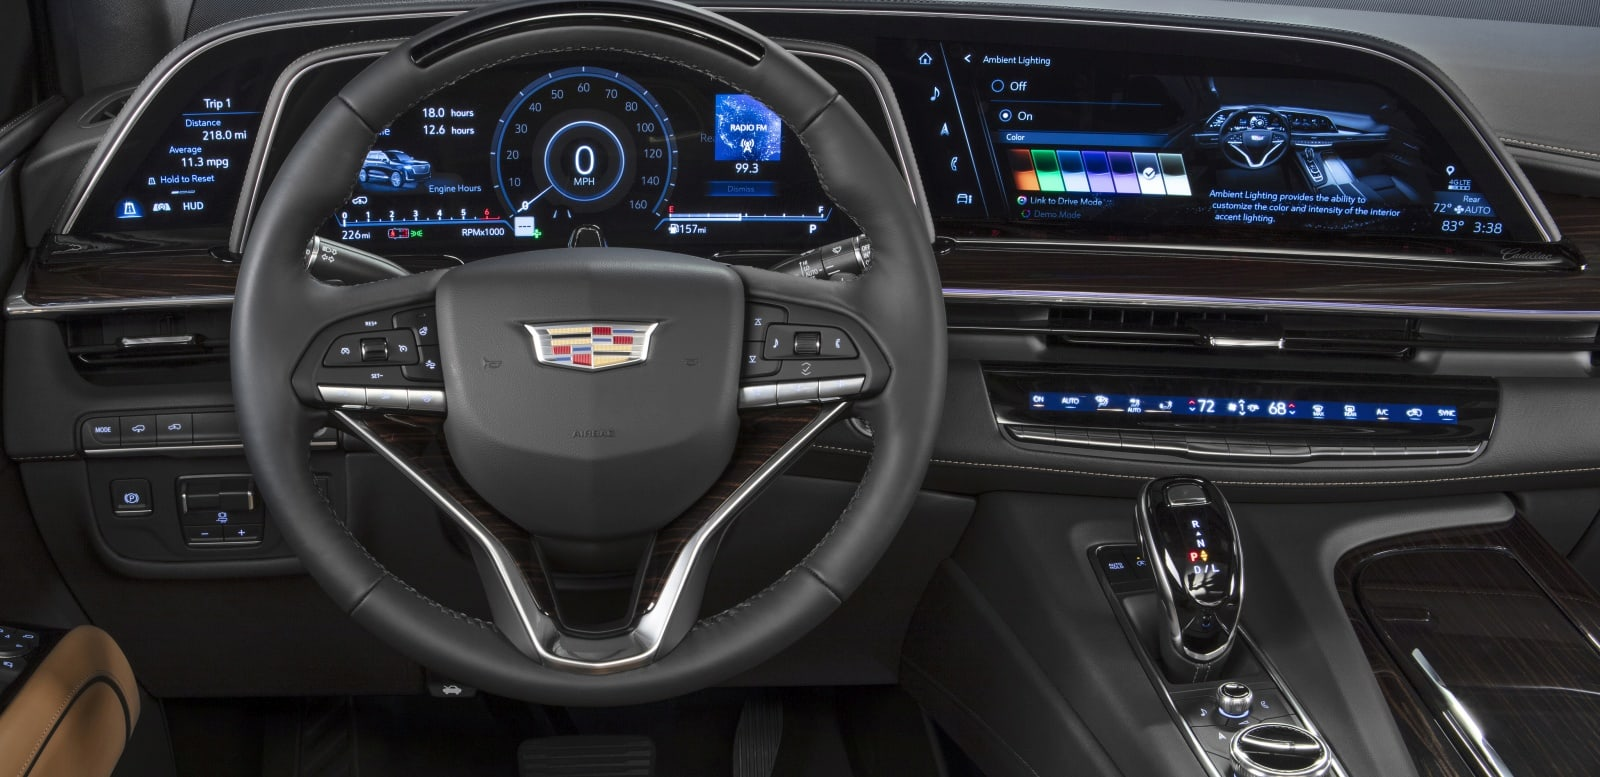 2021 Cadillac Escalade packs 38-inches of curved OLED screens and Super Cruise